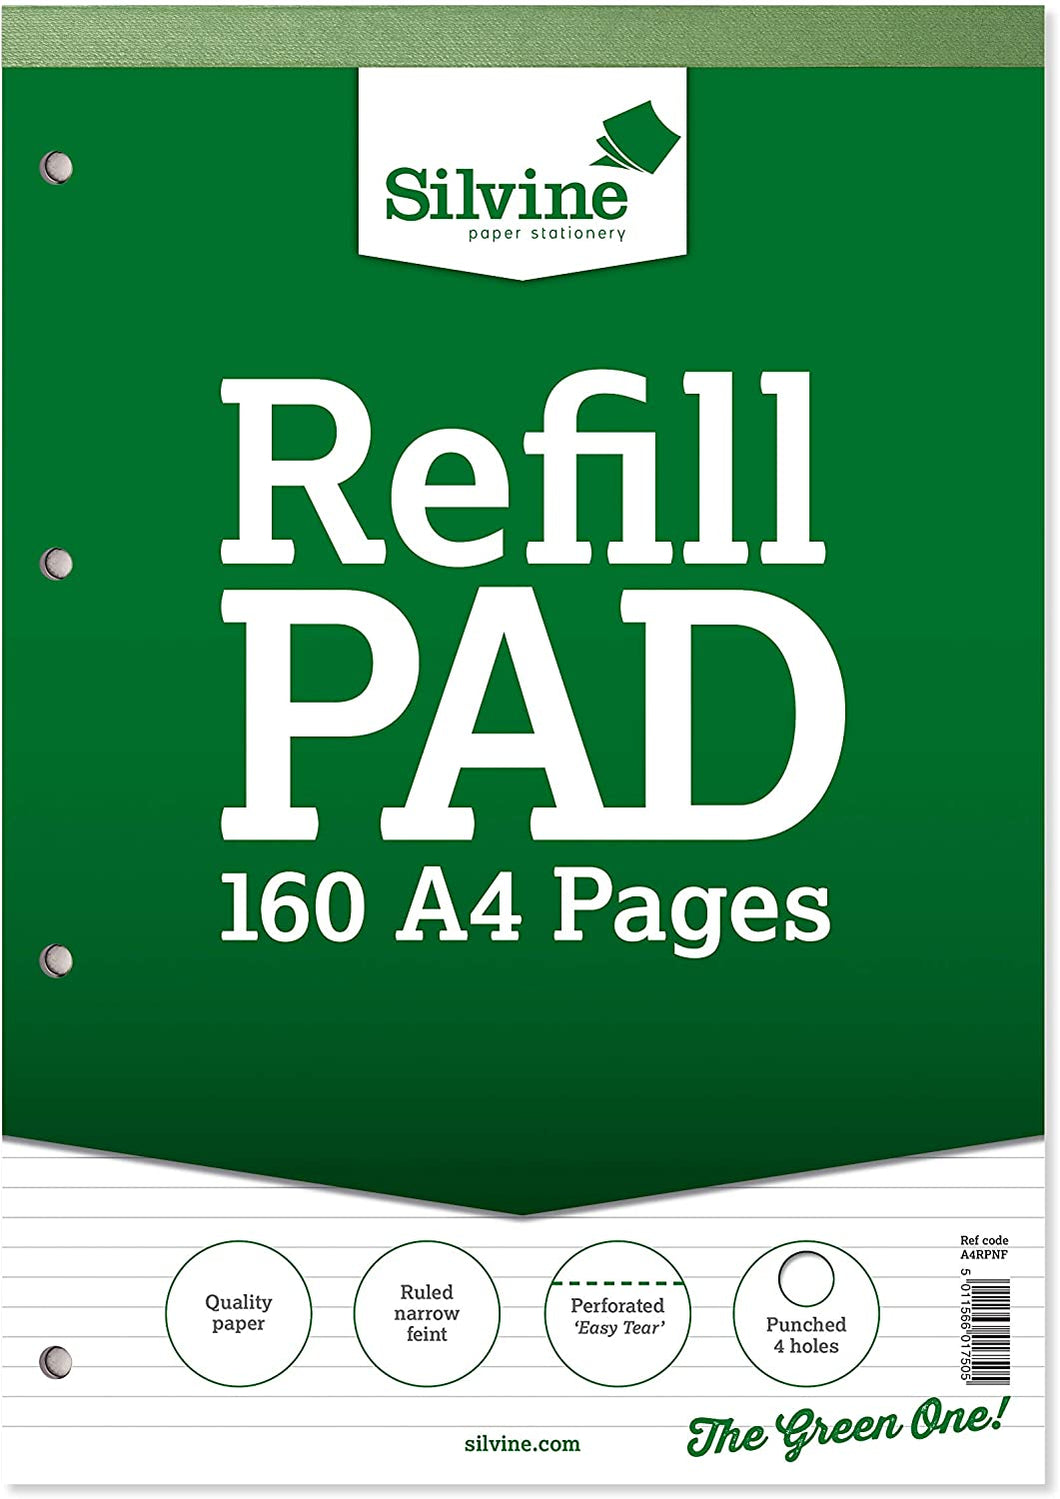 A4 Refill Pad 160 Pages Ruled Narrow Feint A4RPNF